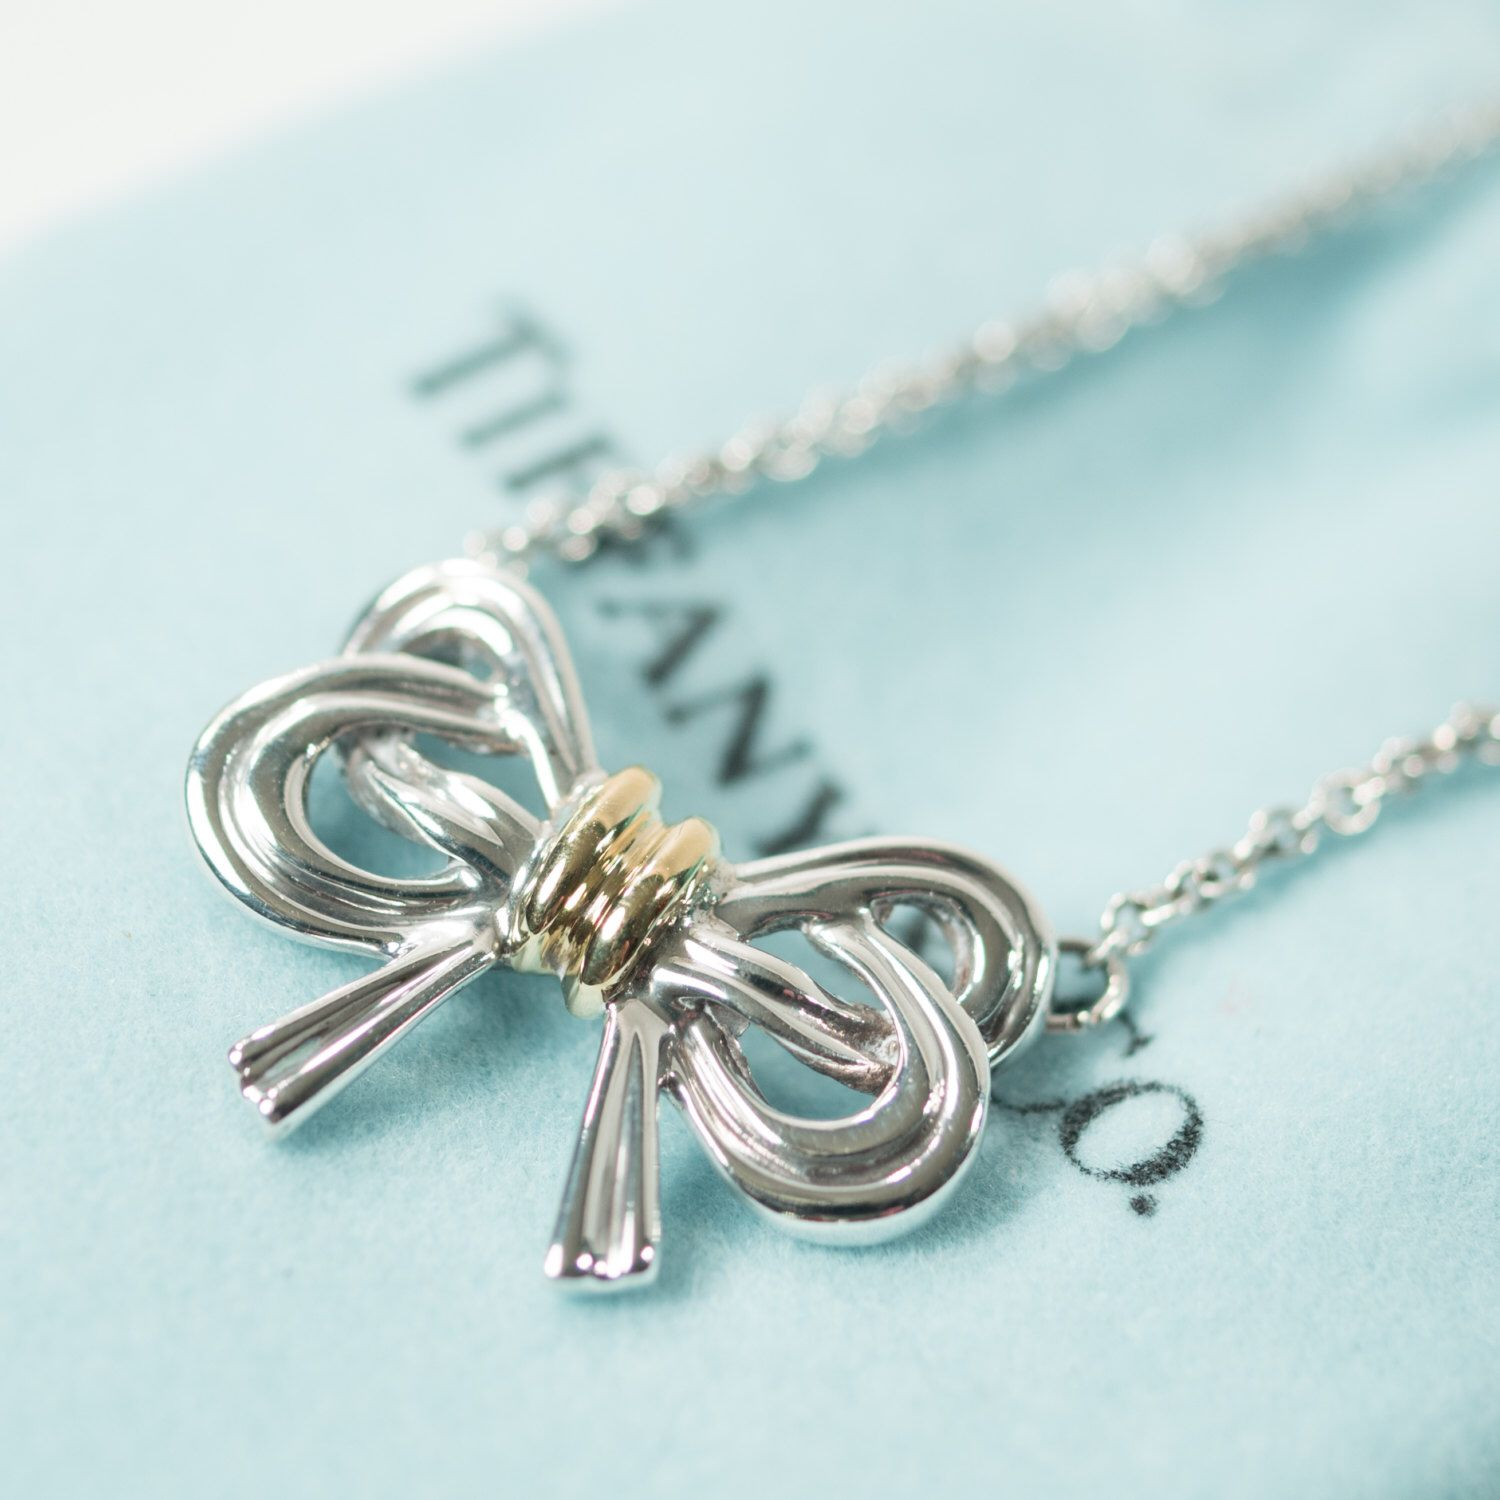 c074b1e643594 Tiffany   Co. Large Ribbon Necklace in Sterling Silver and 18k Gold ...